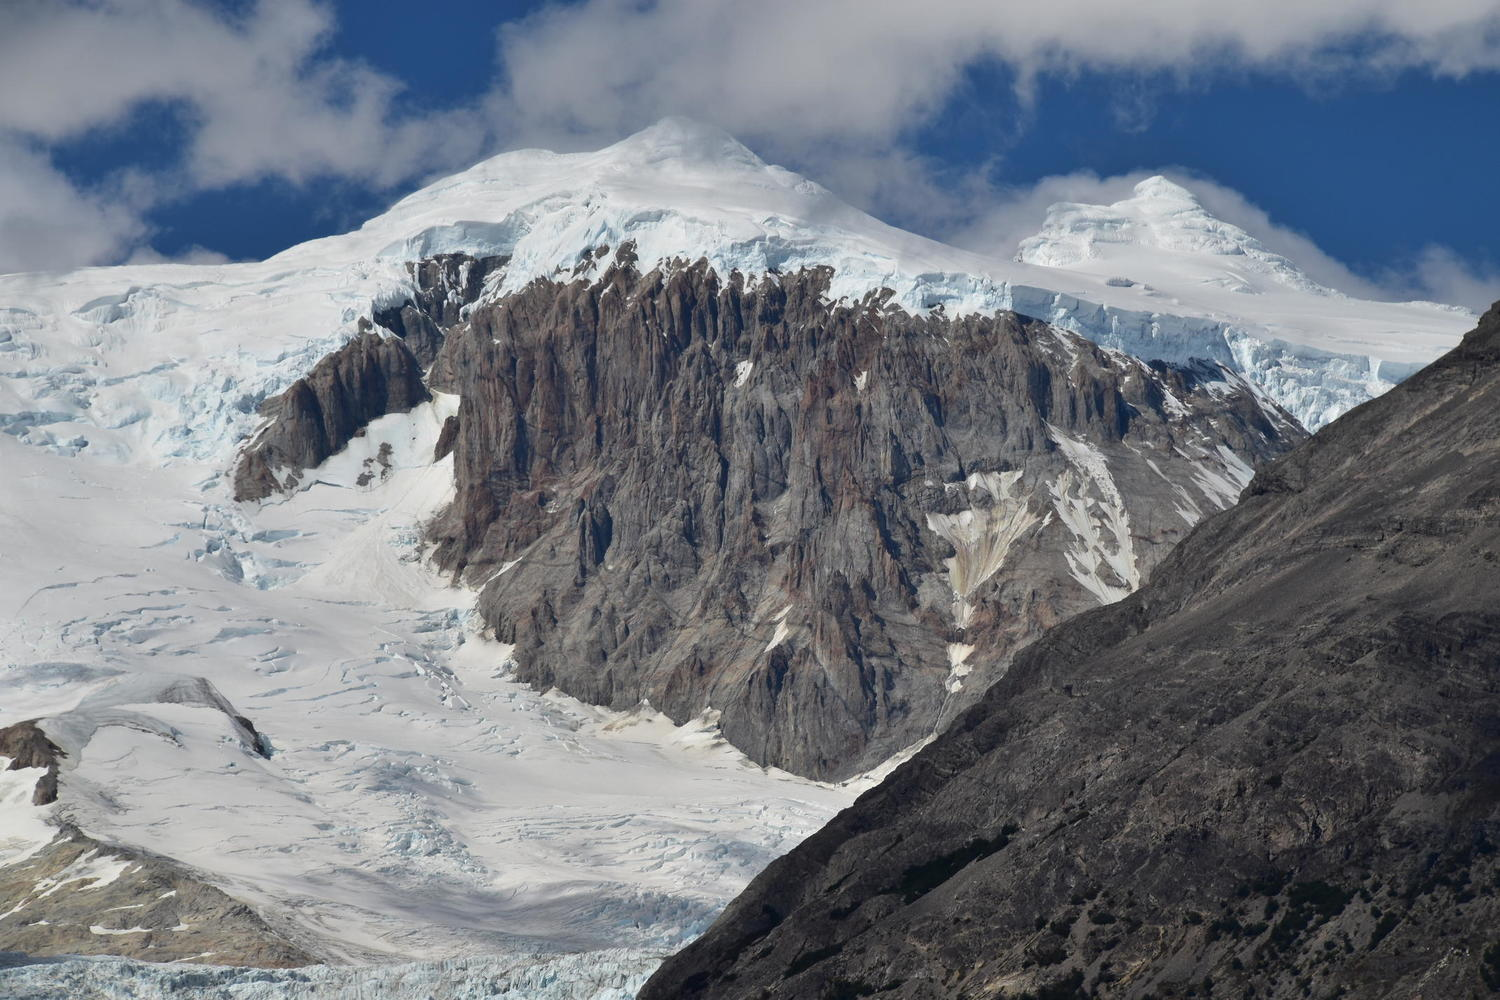 Glorious view of the snow-bound San Lorenzo glacier